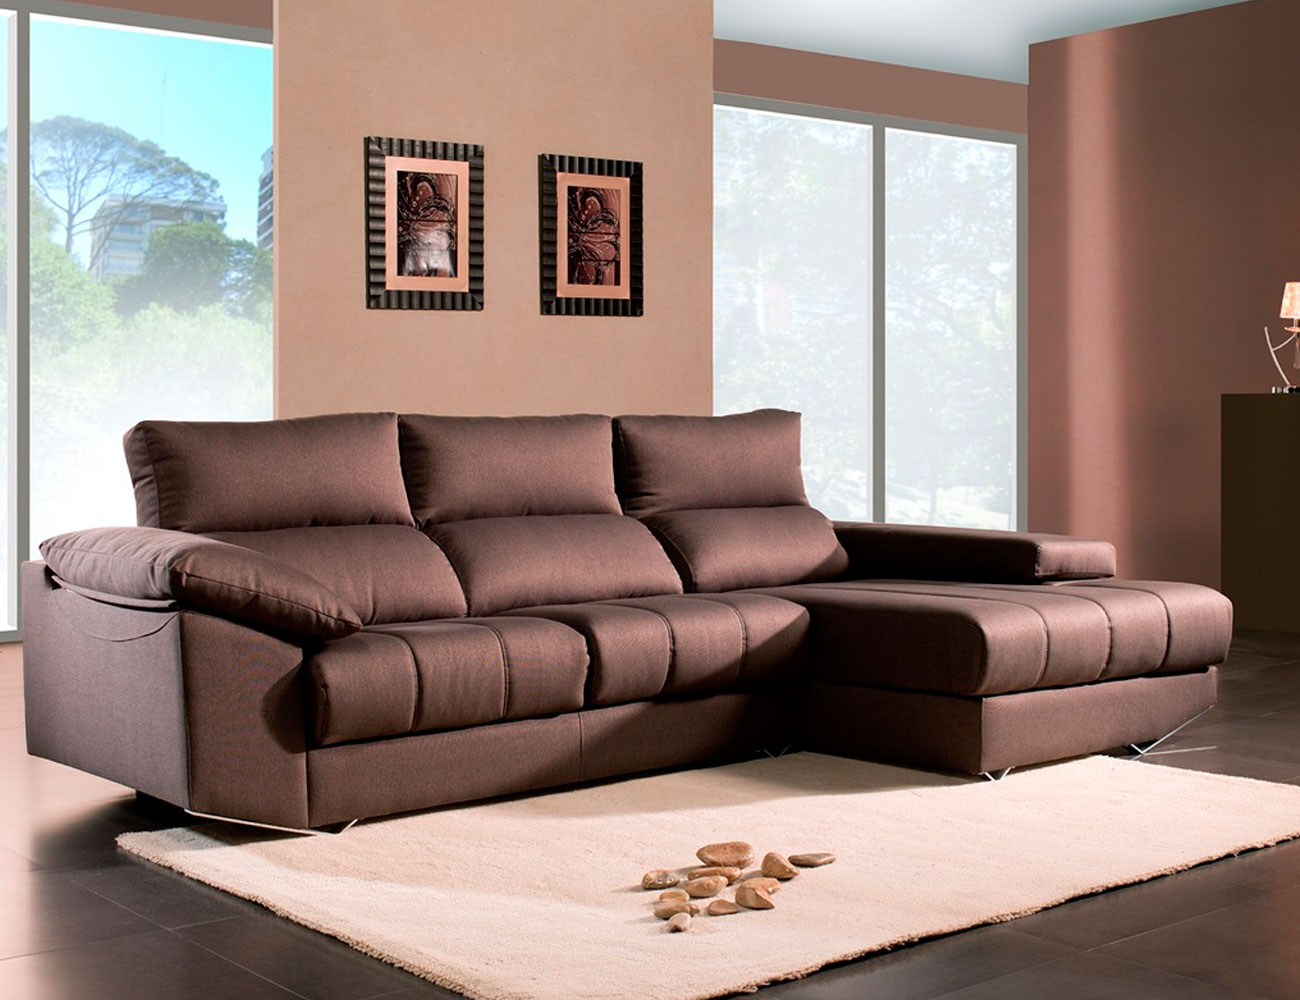 Sofa chaiselongue moderno brazo mecanico21